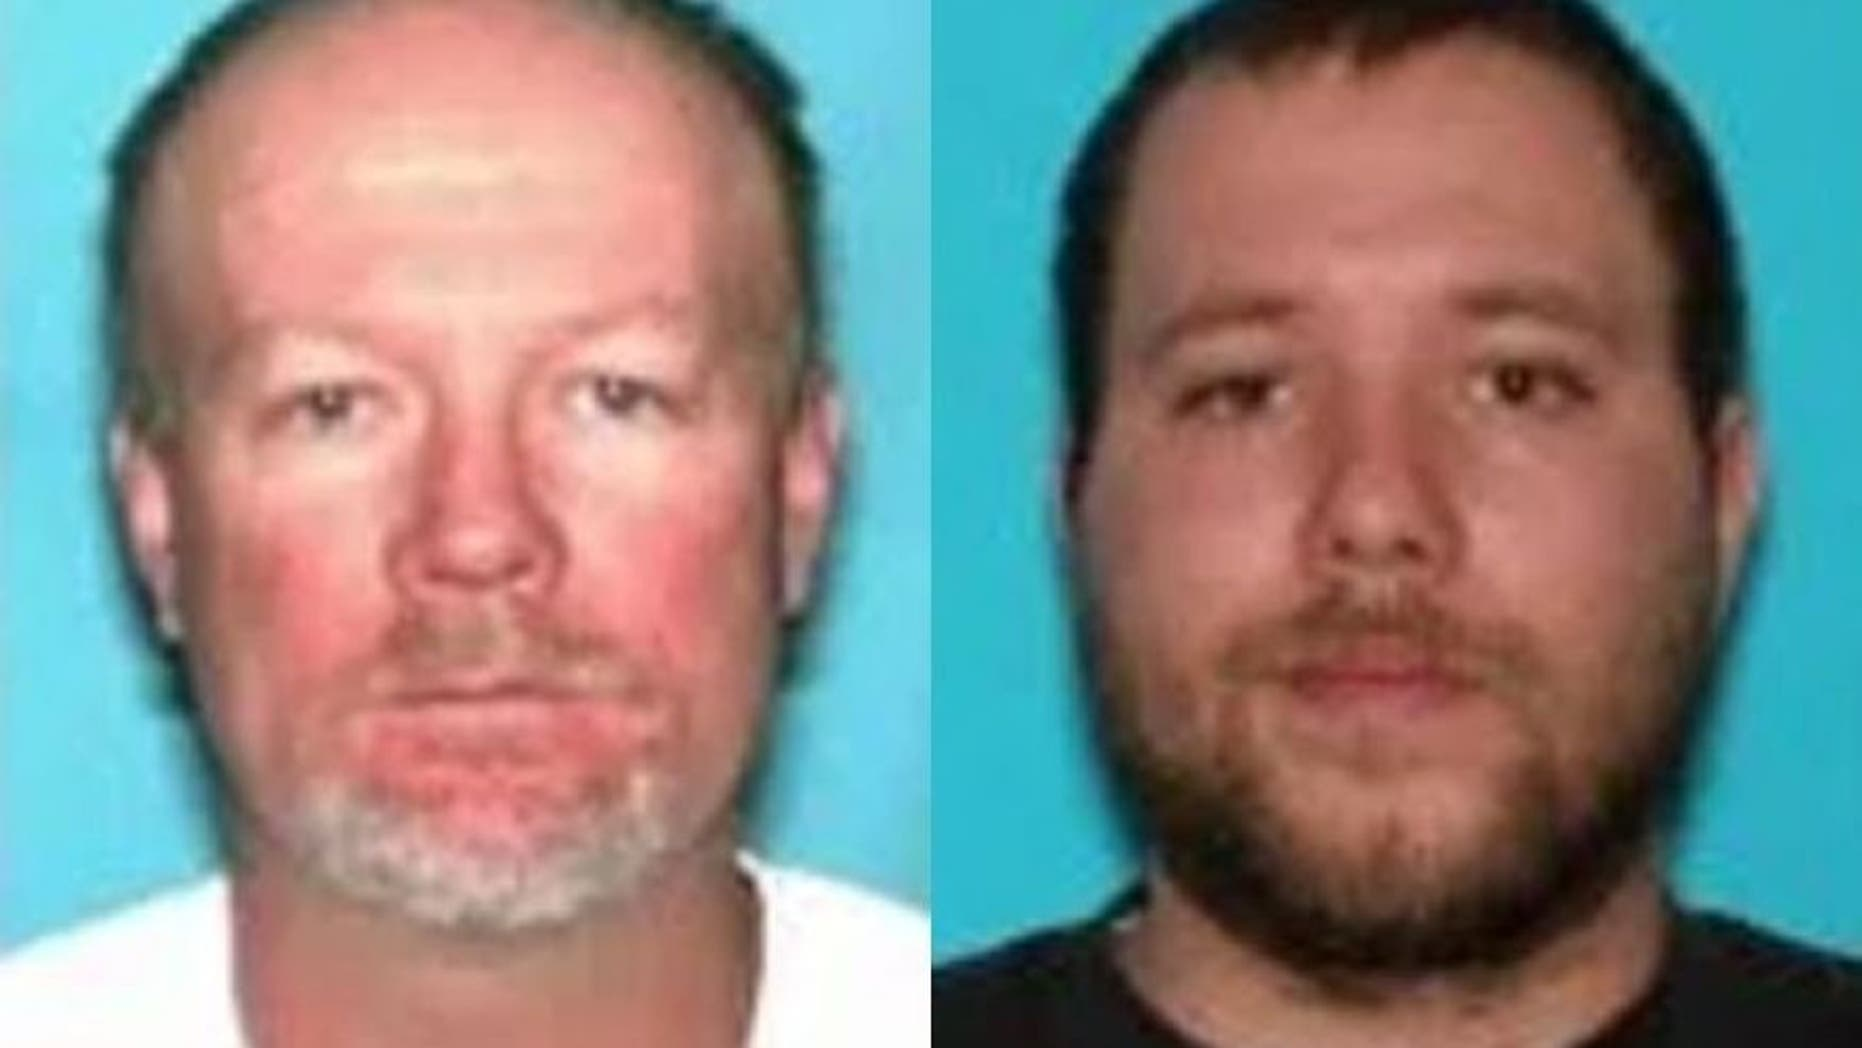 """Officers said the suspects, 51-year-old Flint Wayne Harrison and his son 22-year-old Dereck James (DJ) Harrison, had """"wire ties and duct tape prepared and ready to use"""" in the basement."""